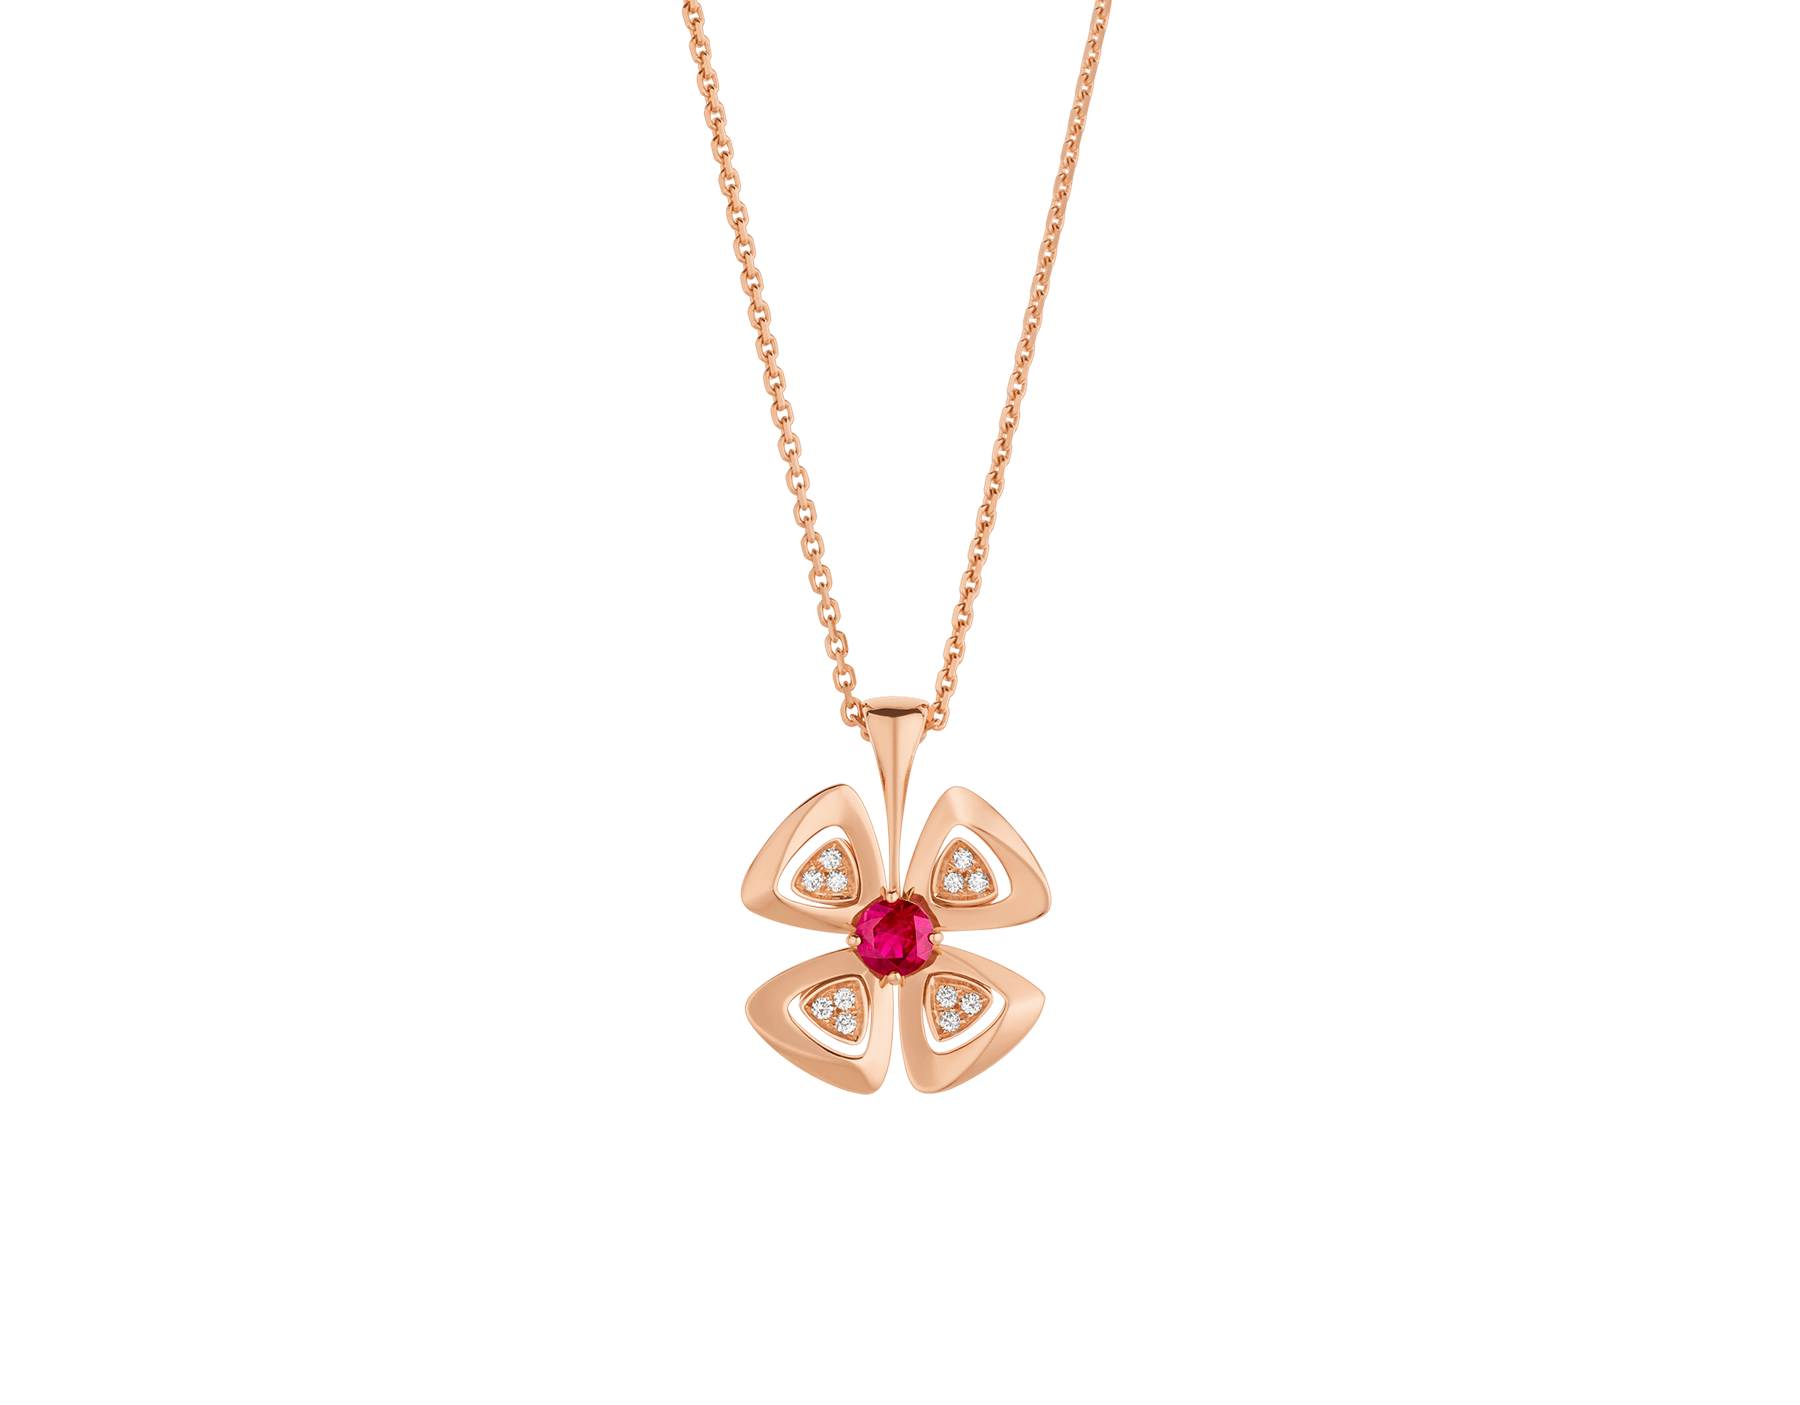 Fiorever 18 kt rose gold pendant necklace set with a central ruby (0.30 ct) and pavé diamonds. Special Edition 357759 image 1